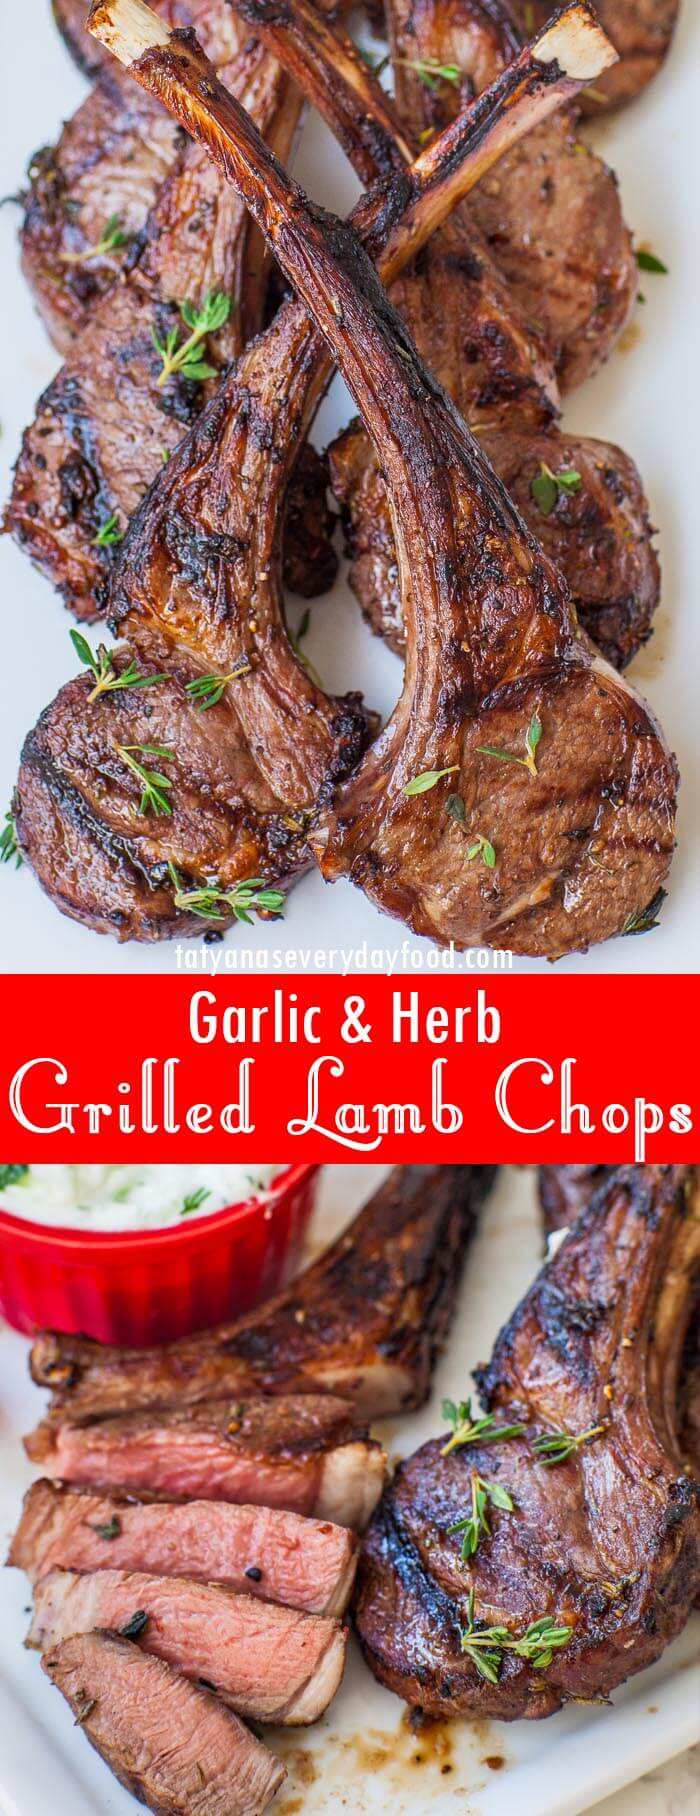 Garlic & Herb Grilled Lamb Chops video recipe